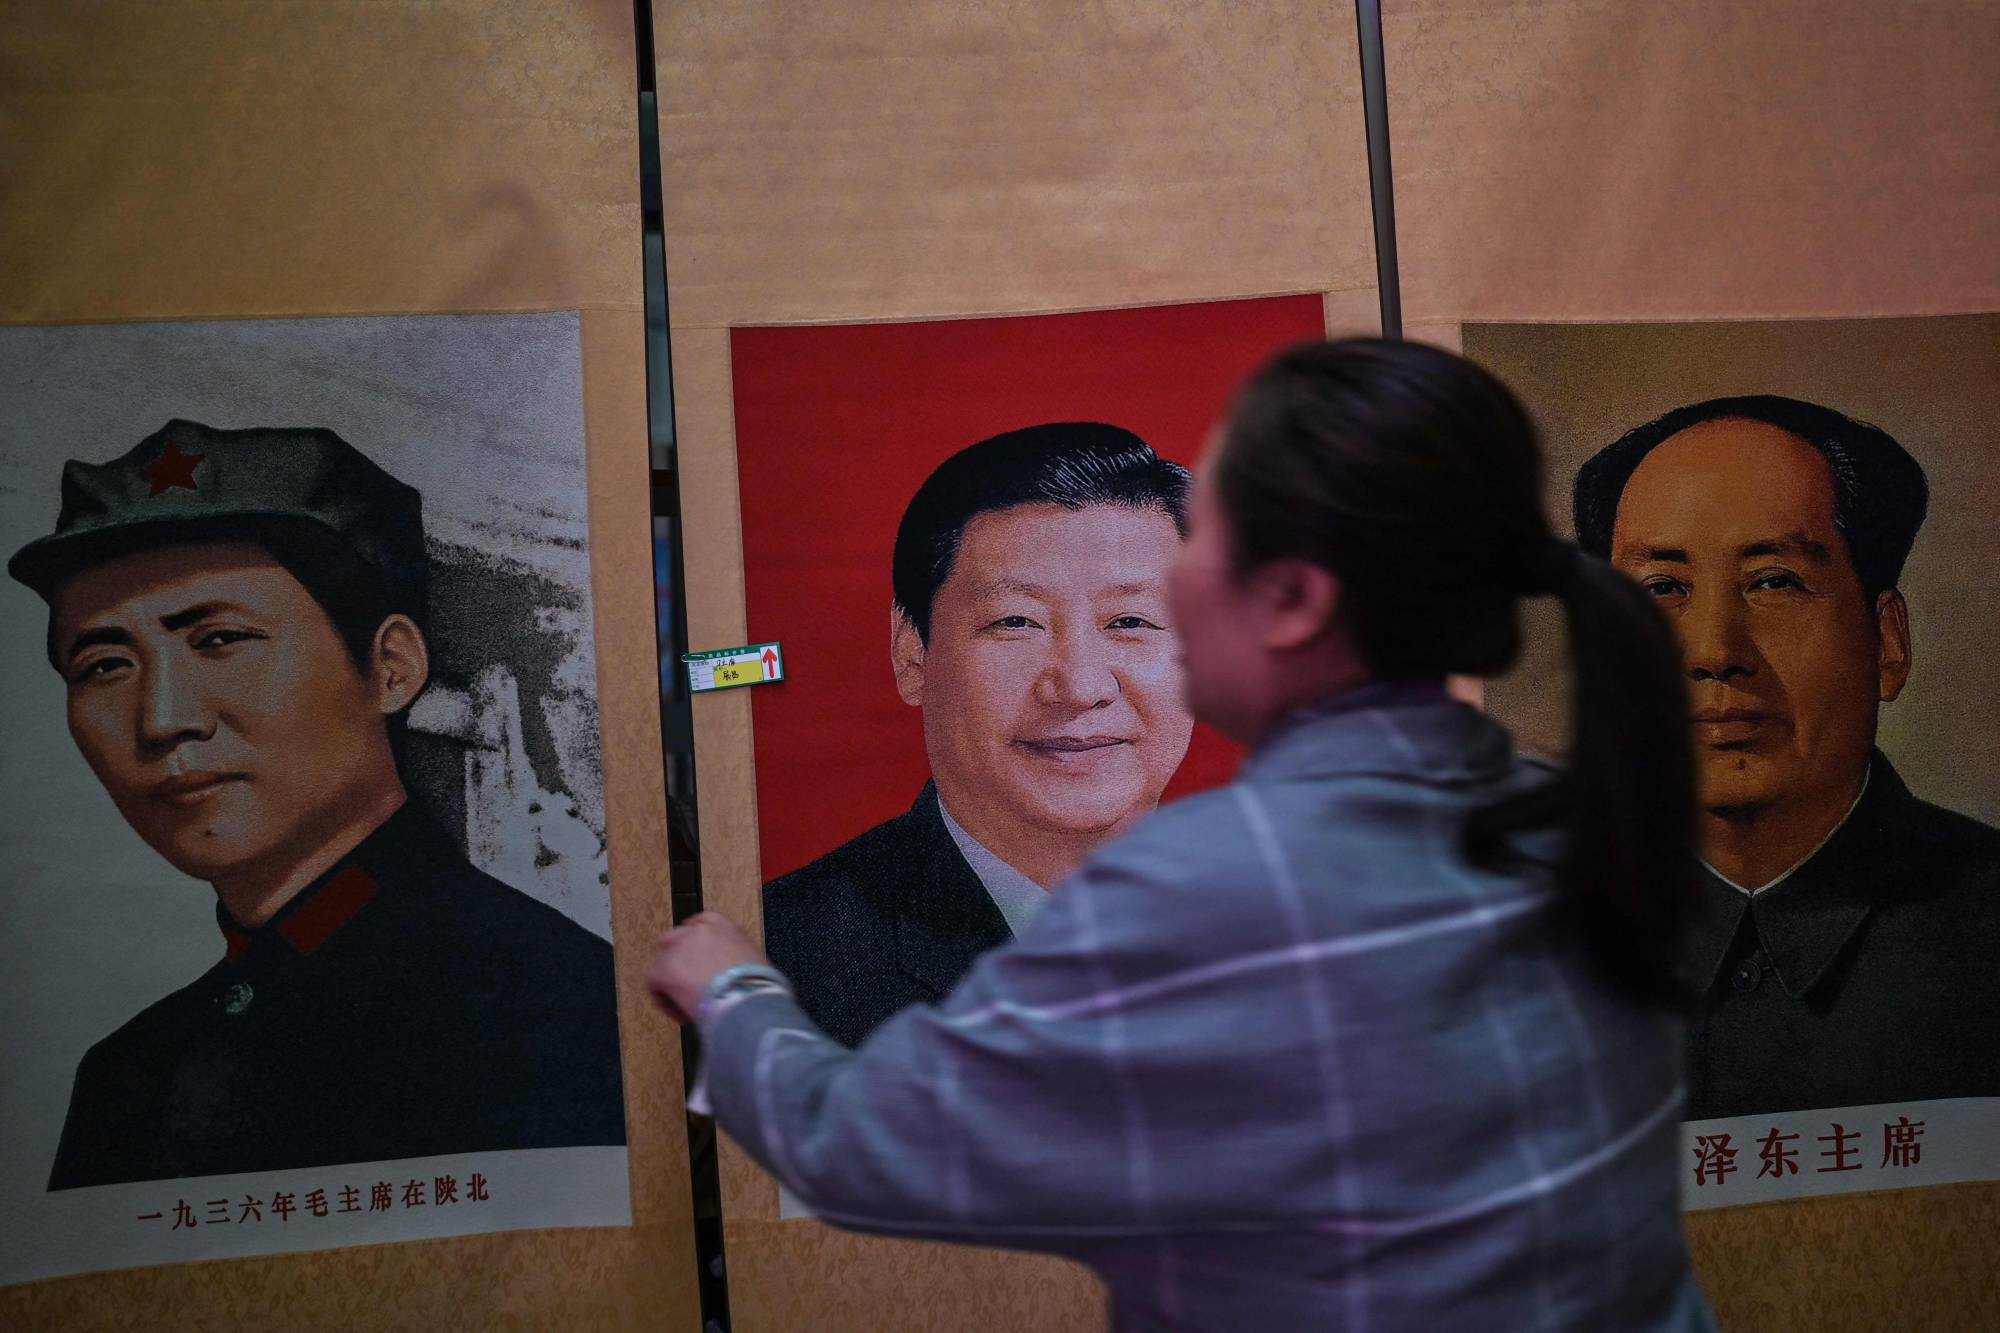 A woman adjusts a portrait of Chinese President Xi Jinping between two pictures of former leader Mao Zedong at the Dongfanghong Theater in Yan'an, China, on Saturday, ahead of the 100th anniversary of the Chinese Communist Party's founding in July.  | AFP-JIJI